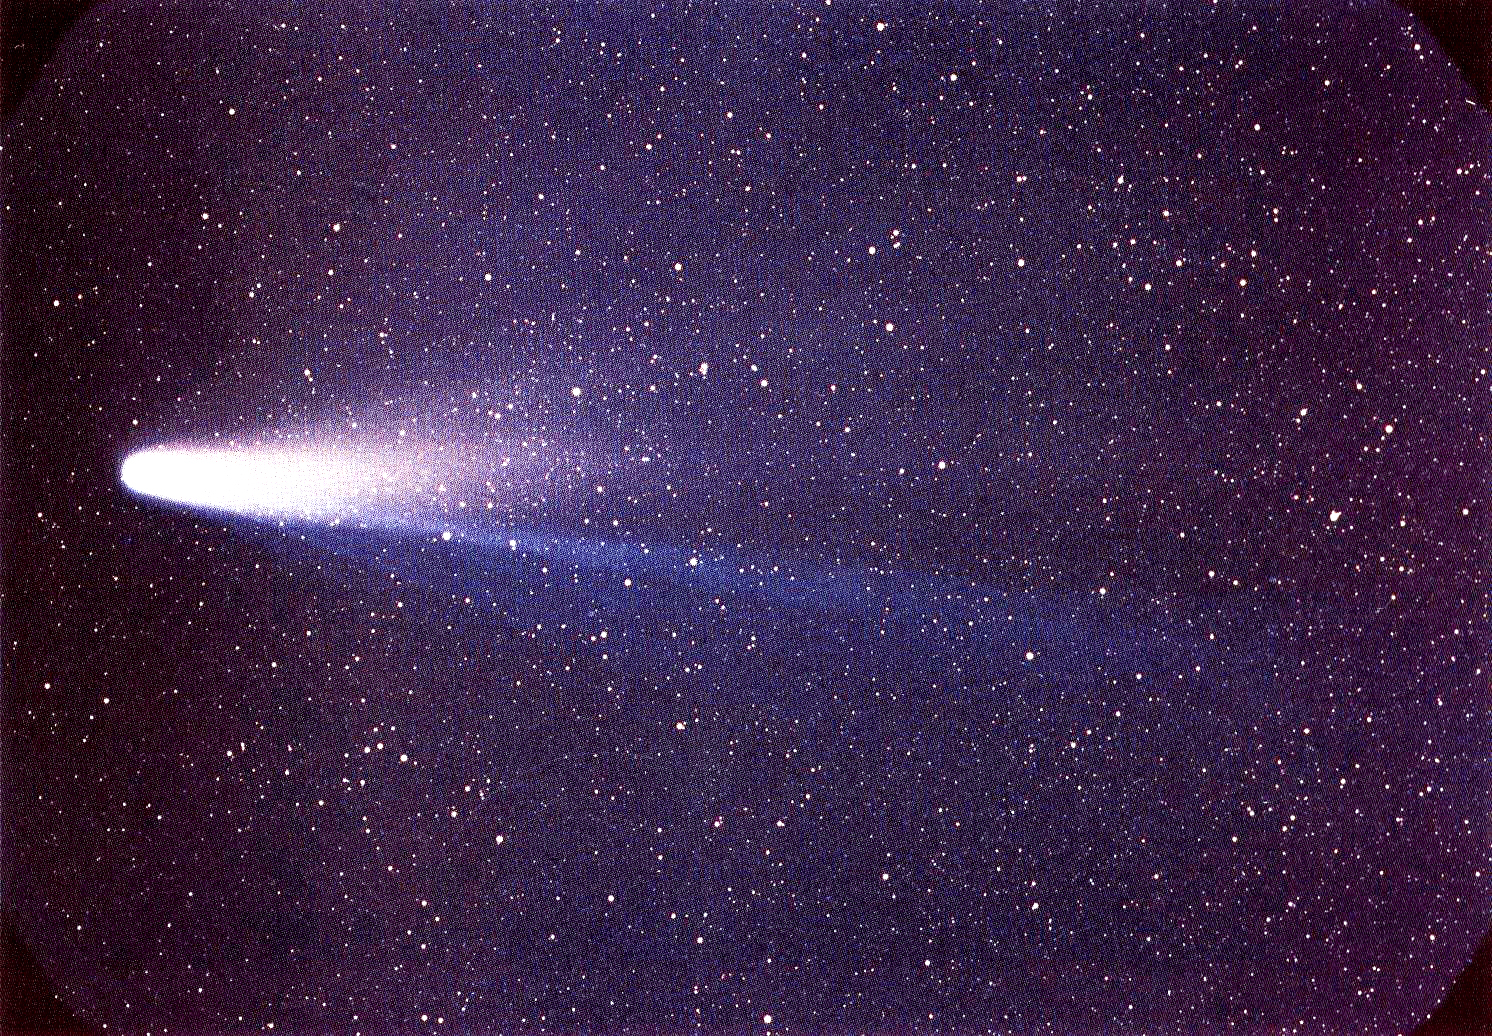 A color image of comet Halley, shown flying to the left aligned flat against the sky